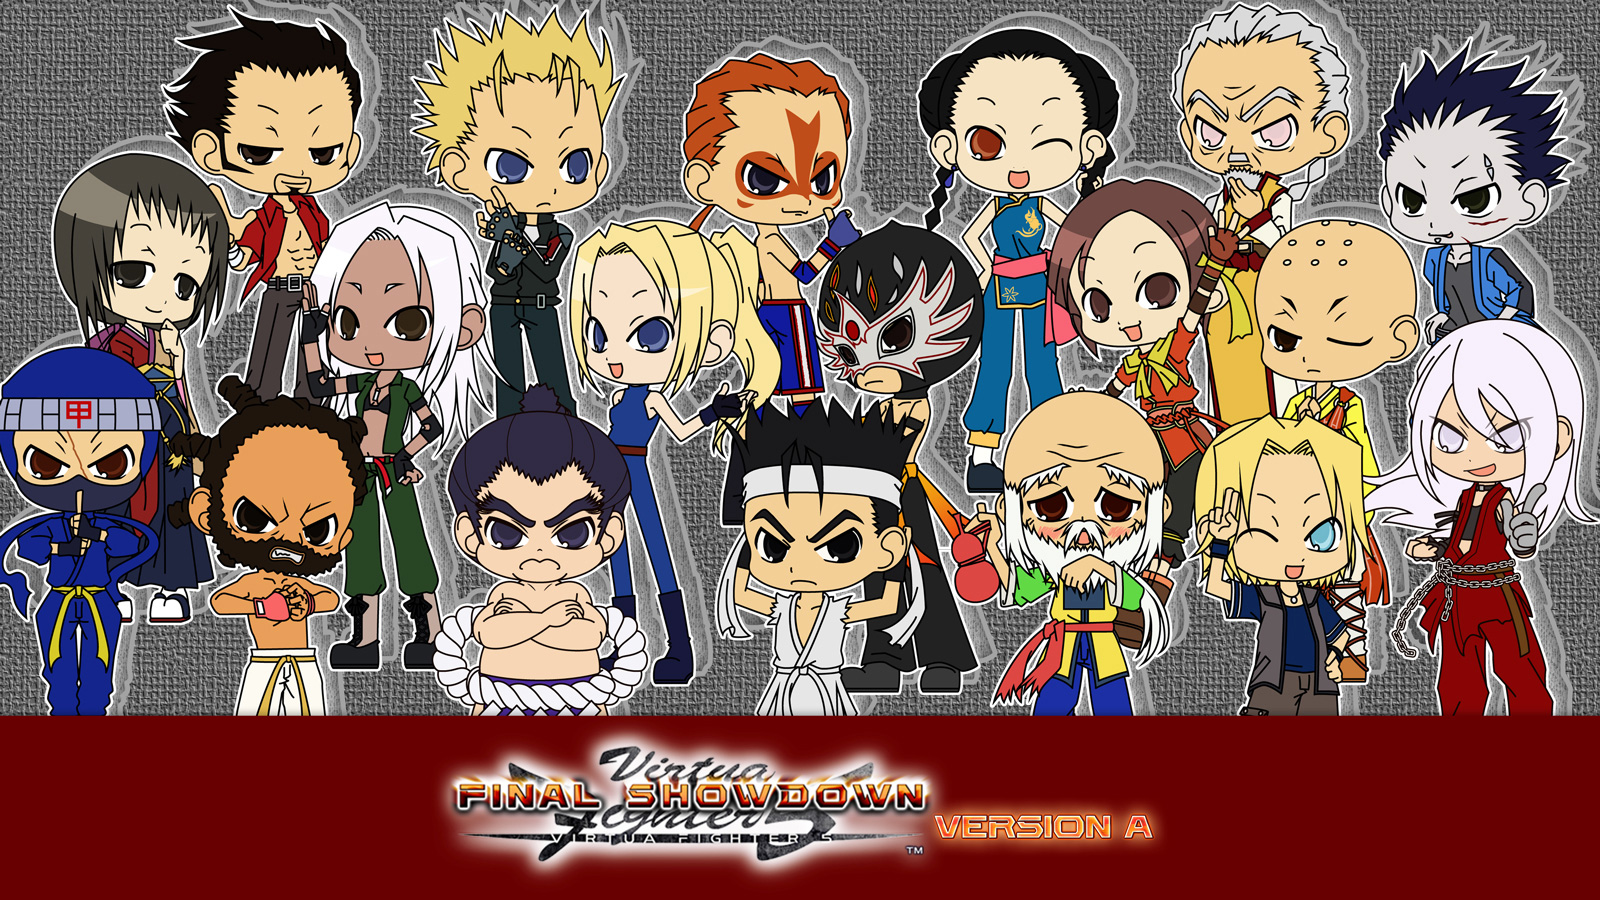 Virtua Fighter 5 Final Showdown, c'est l'intention qui compte